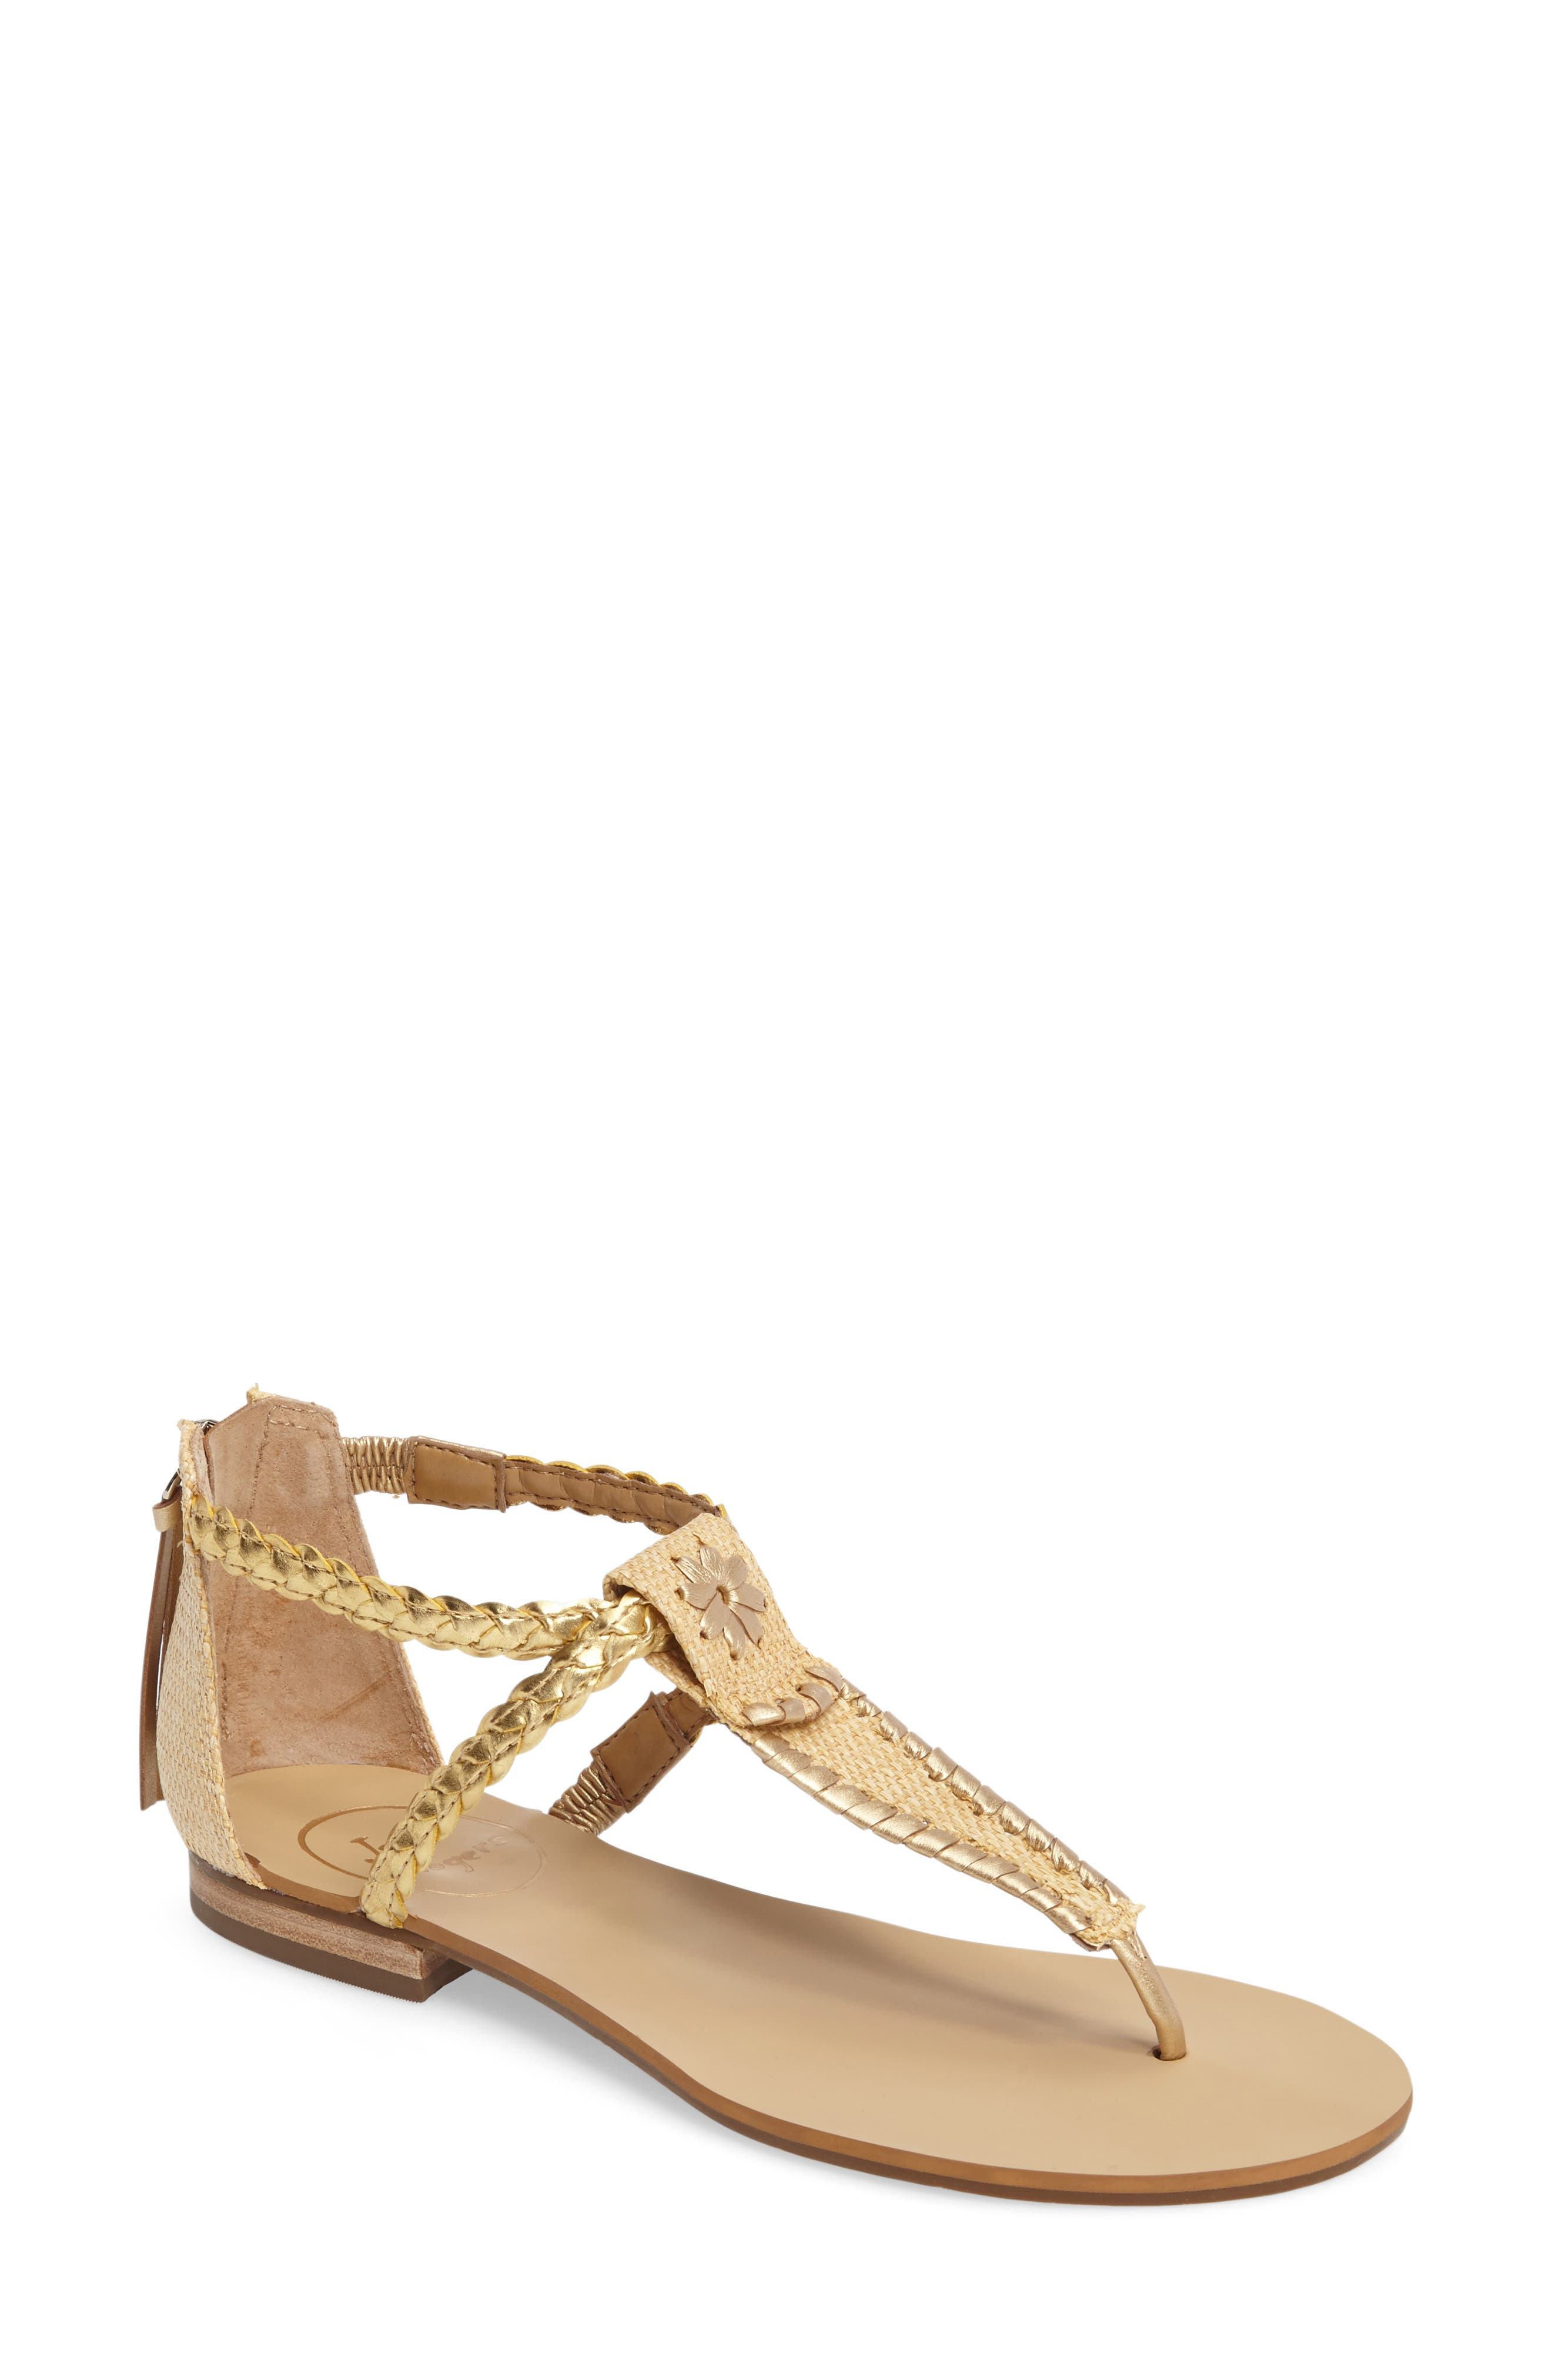 Jenna Sandal,                         Main,                         color, Natural/ Gold Fabric